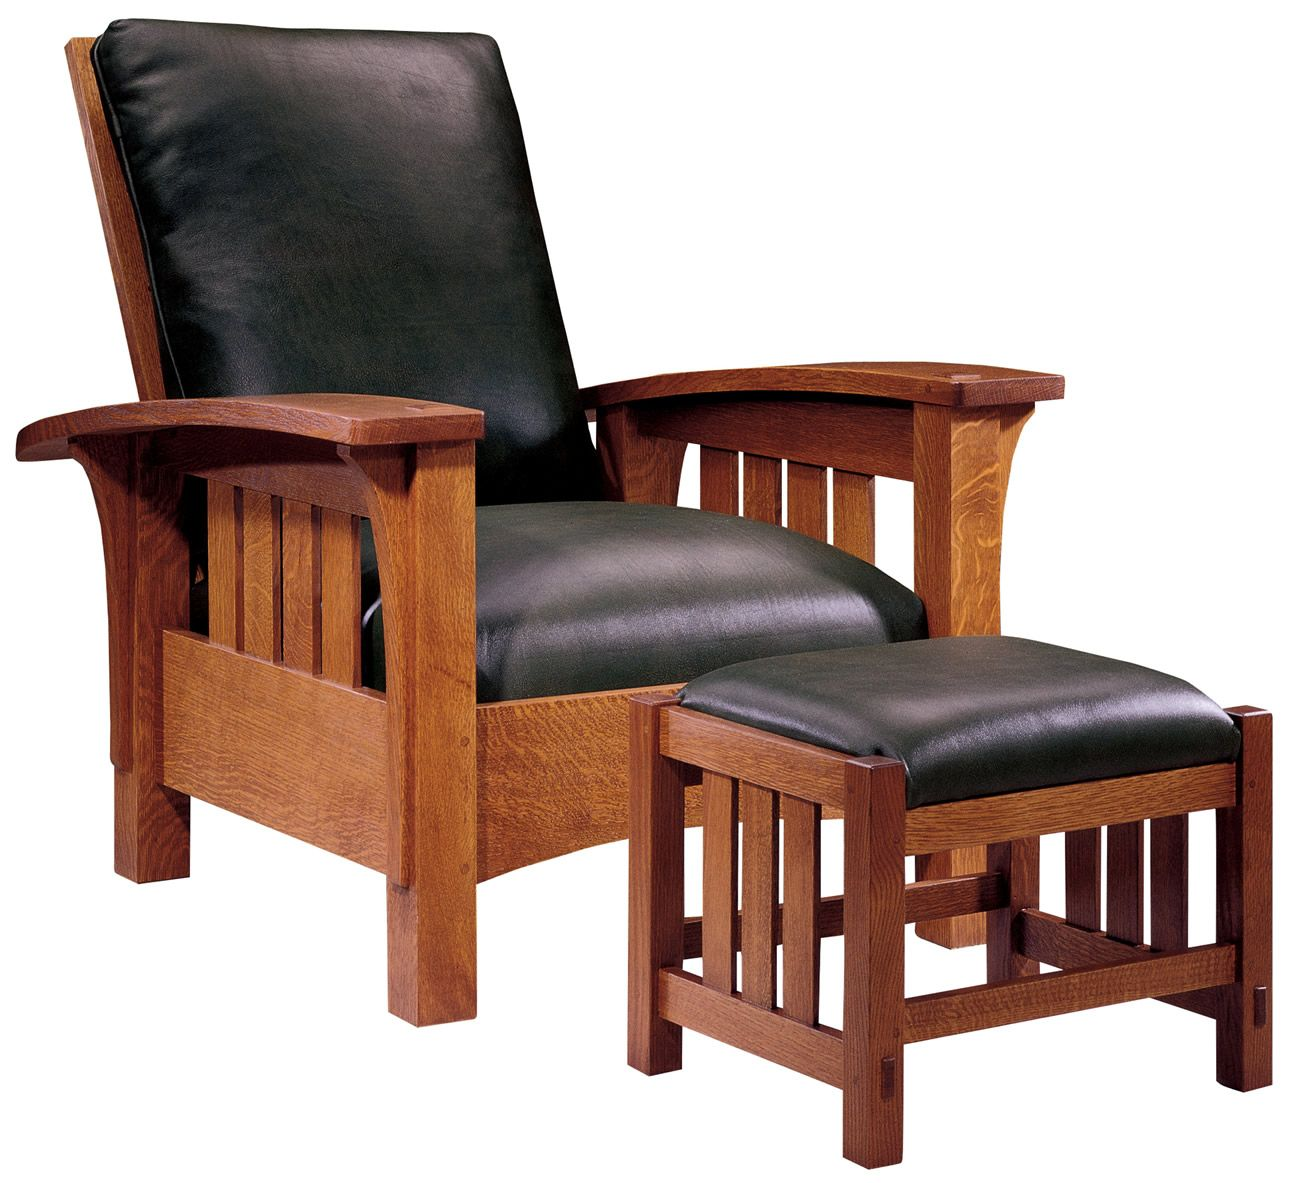 Gentil Stickley Furniture: Classic Bow Arm Morris Chair U0026 Ottoman